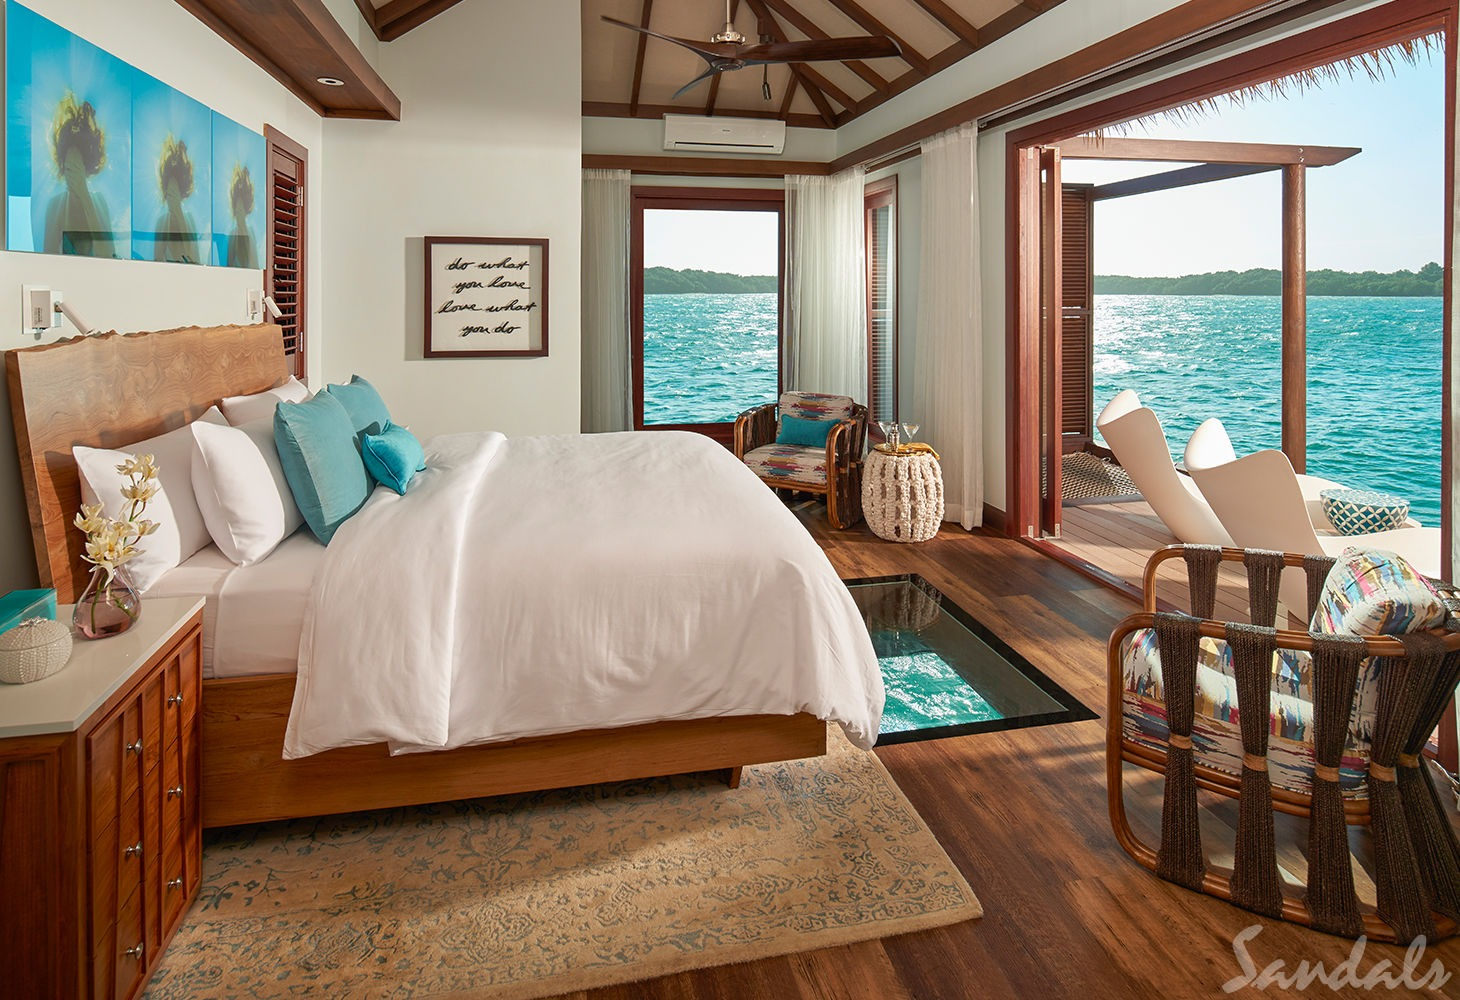 Overwater Bungalows at Sandals from 2 Travel Anywhere | Nashville Bride Guide